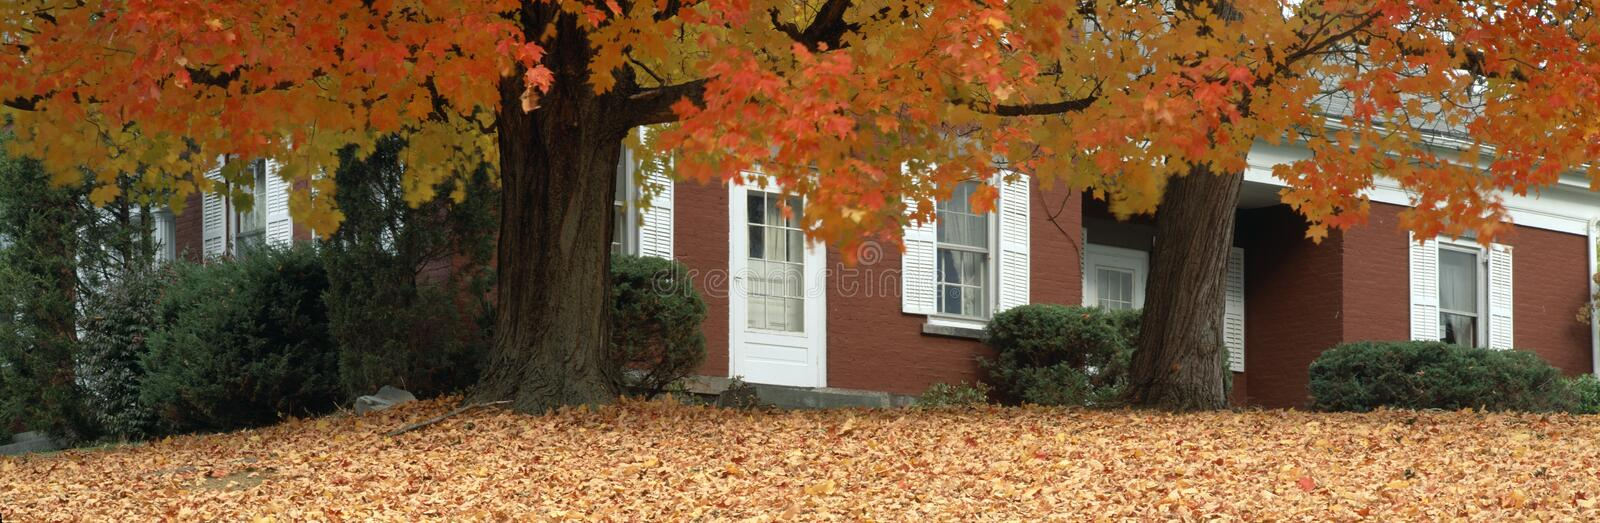 Red house and maple trees stock image